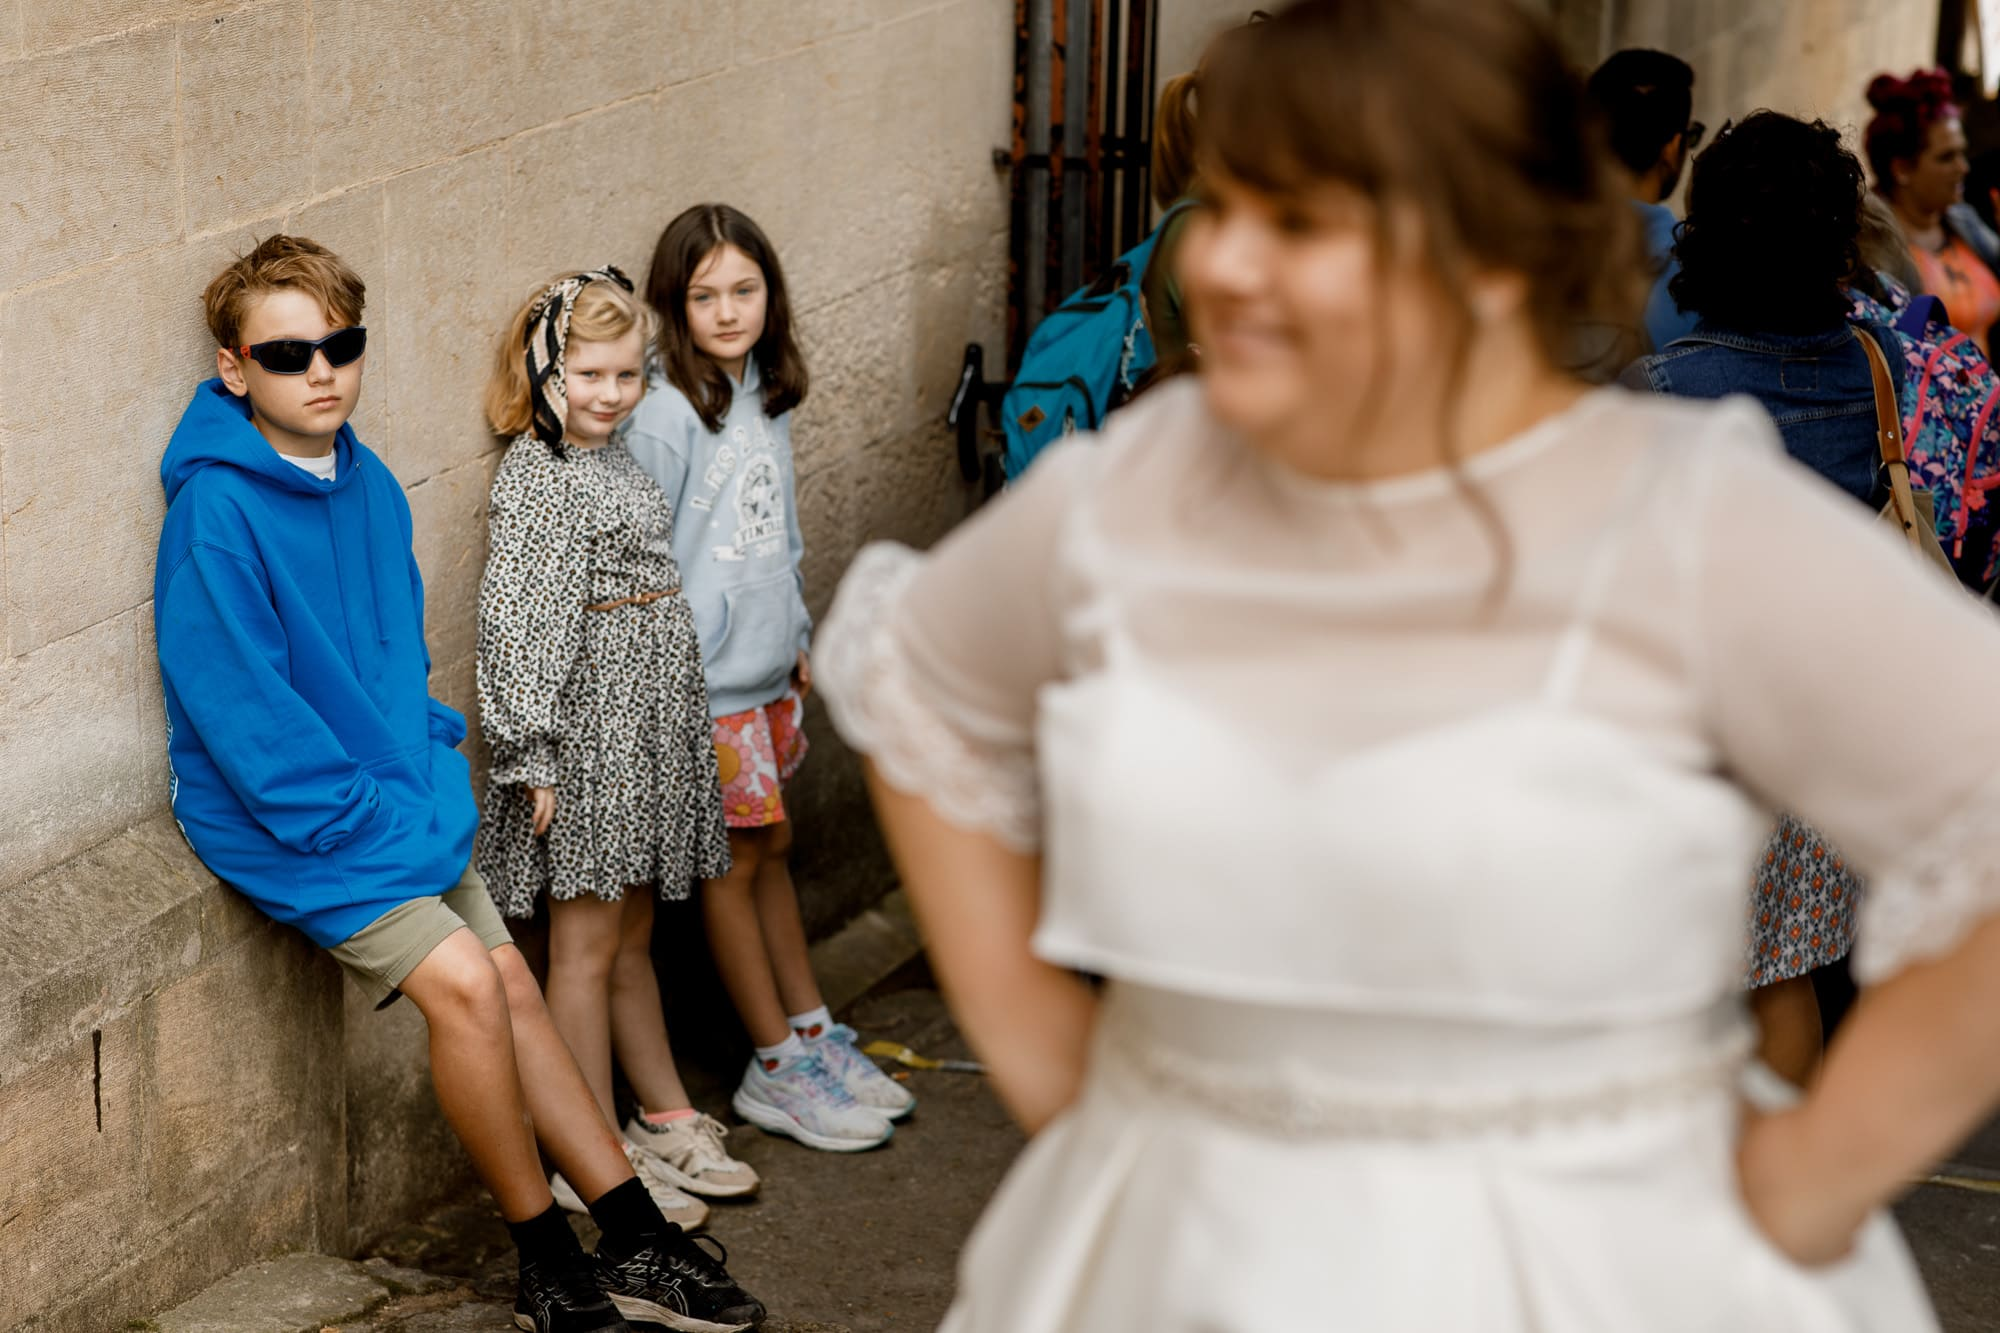 boy looking at bride with sunglasses